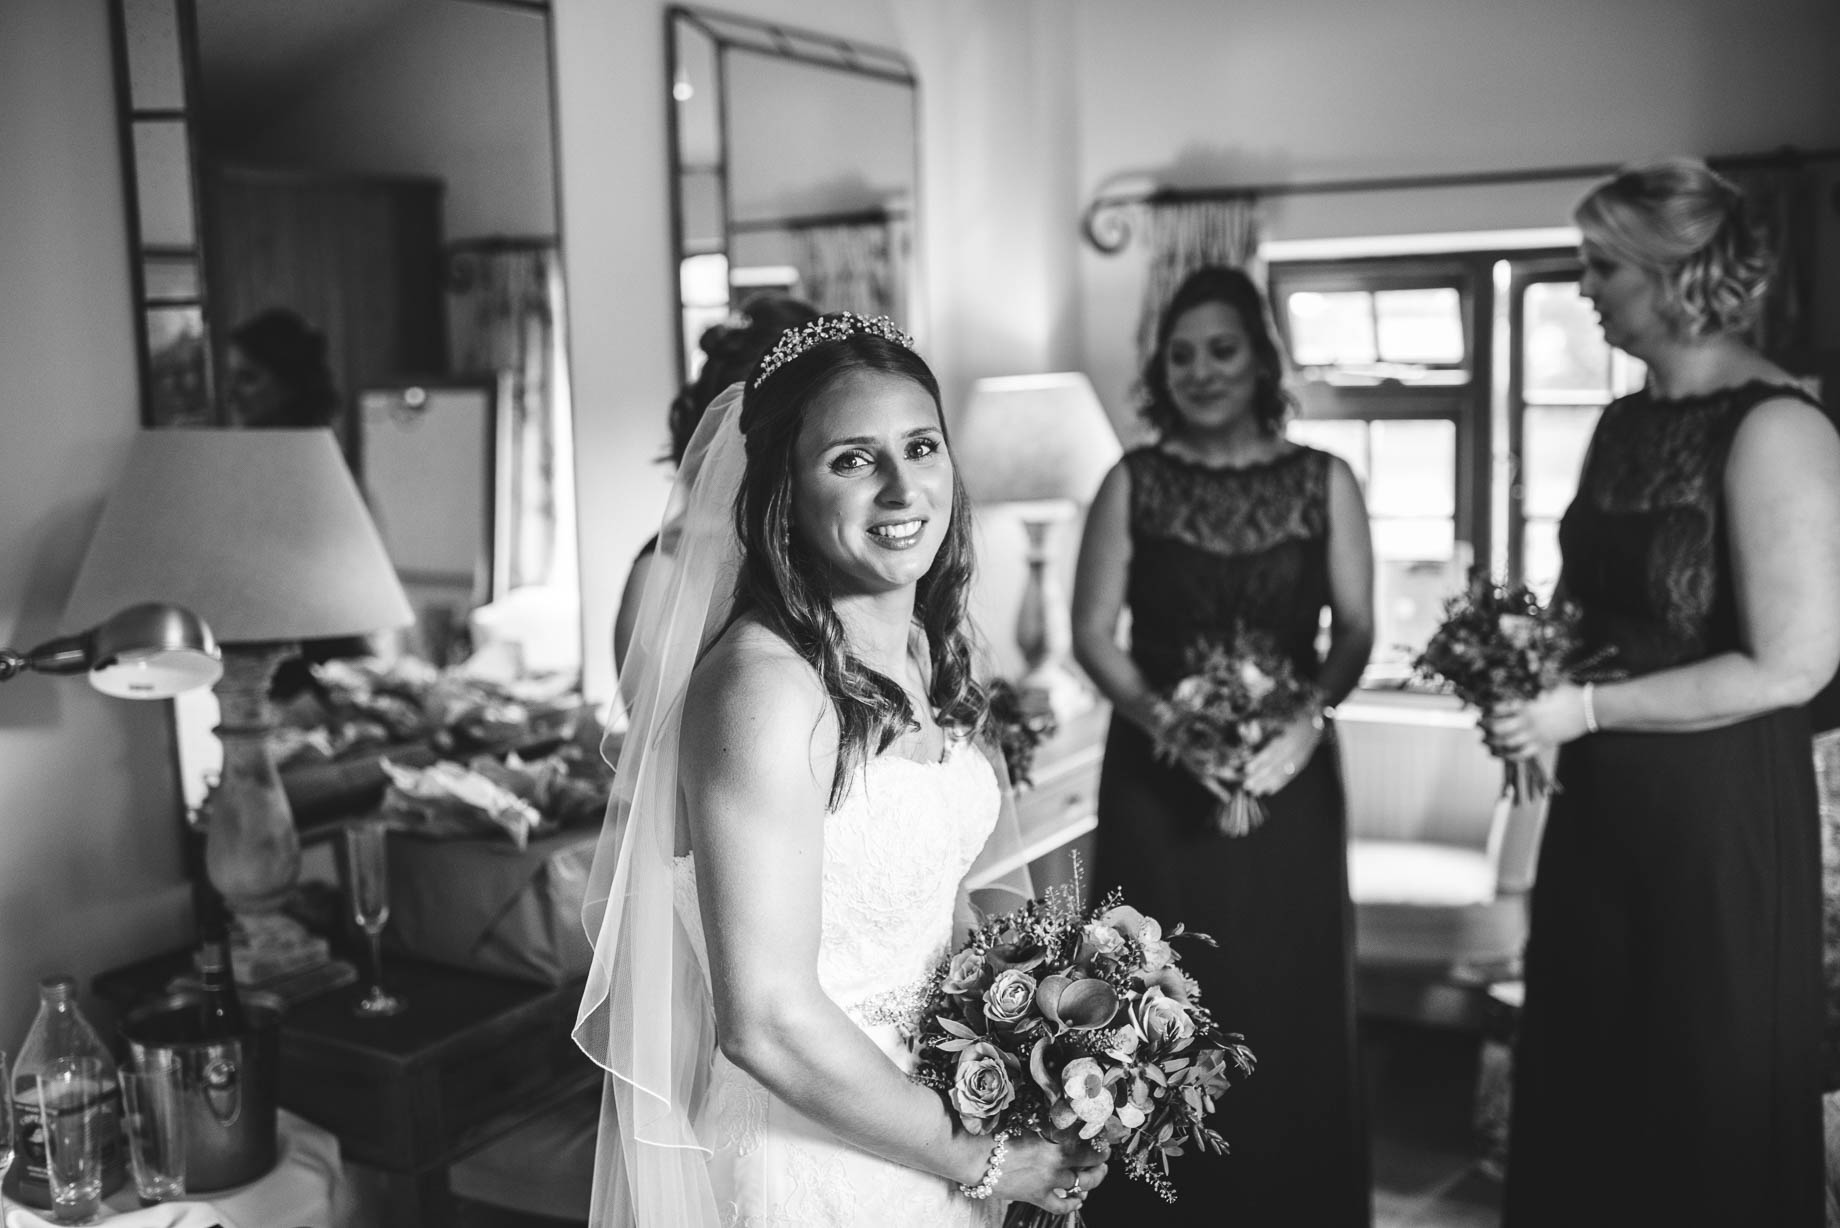 Gate Street Barn wedding photography - Guy Collier - Claire and Andy (48 of 192)